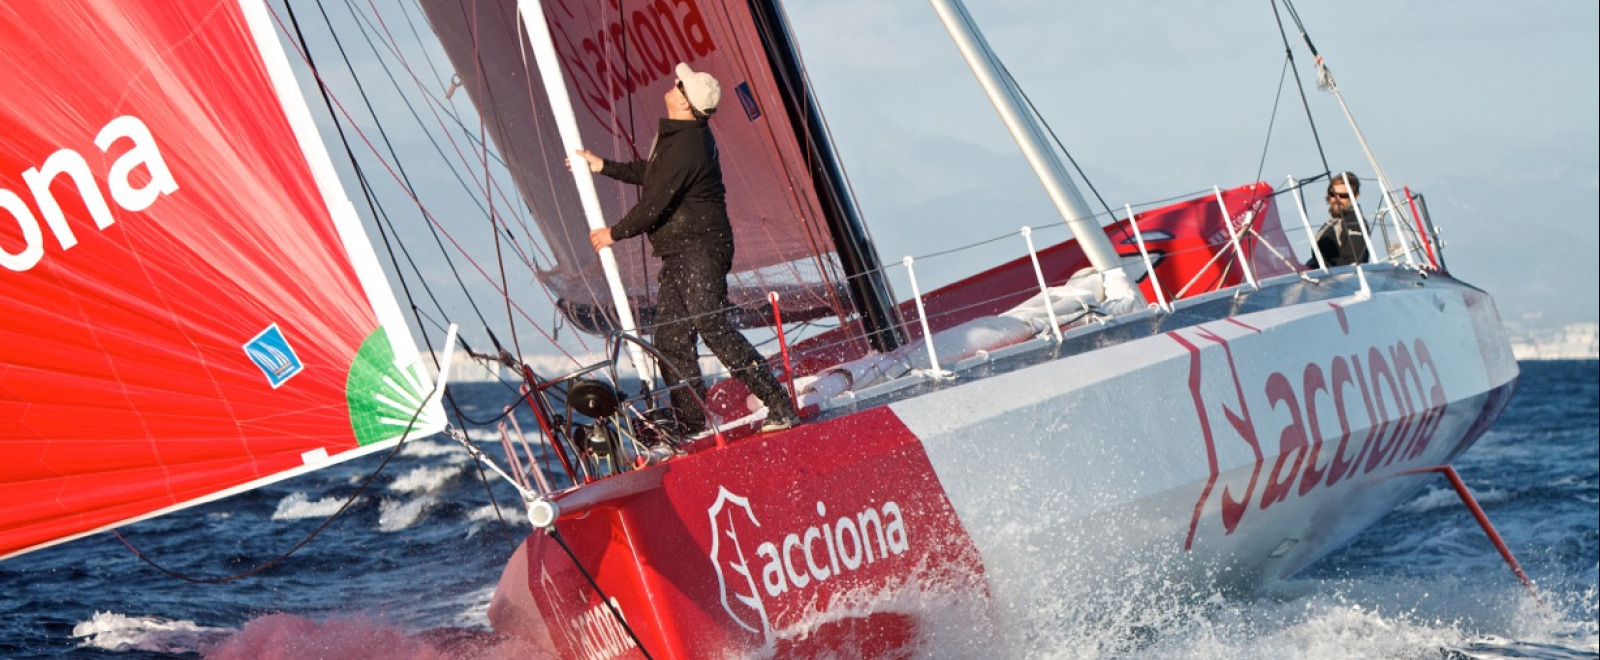 Actualités It S Not About The Boat Vendée Globe